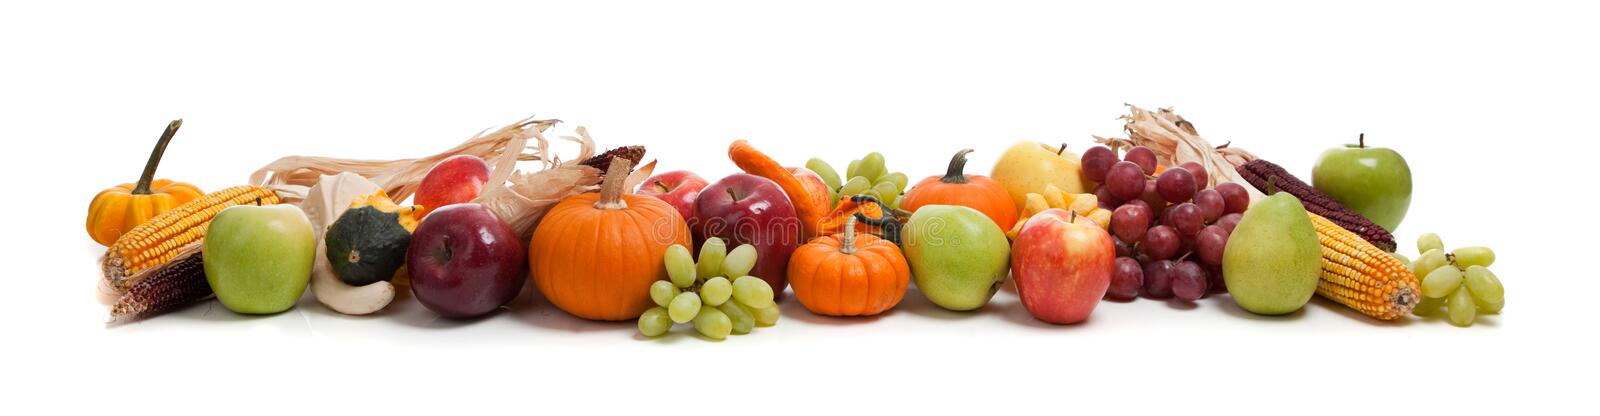 Arrangement of fall fruits and vegetables royalty free stock photography